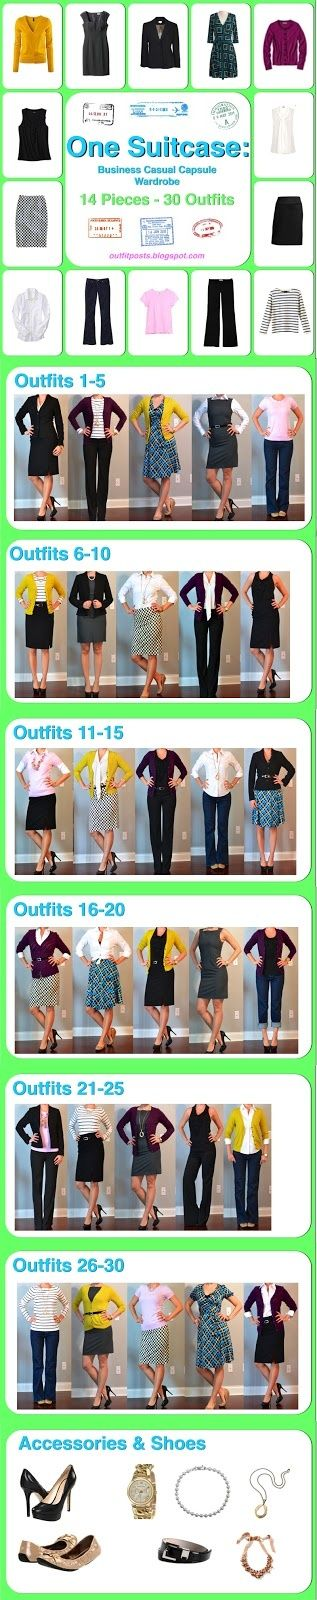 One suitcase: business casual wardrobe - 14 pieces 30 outfits